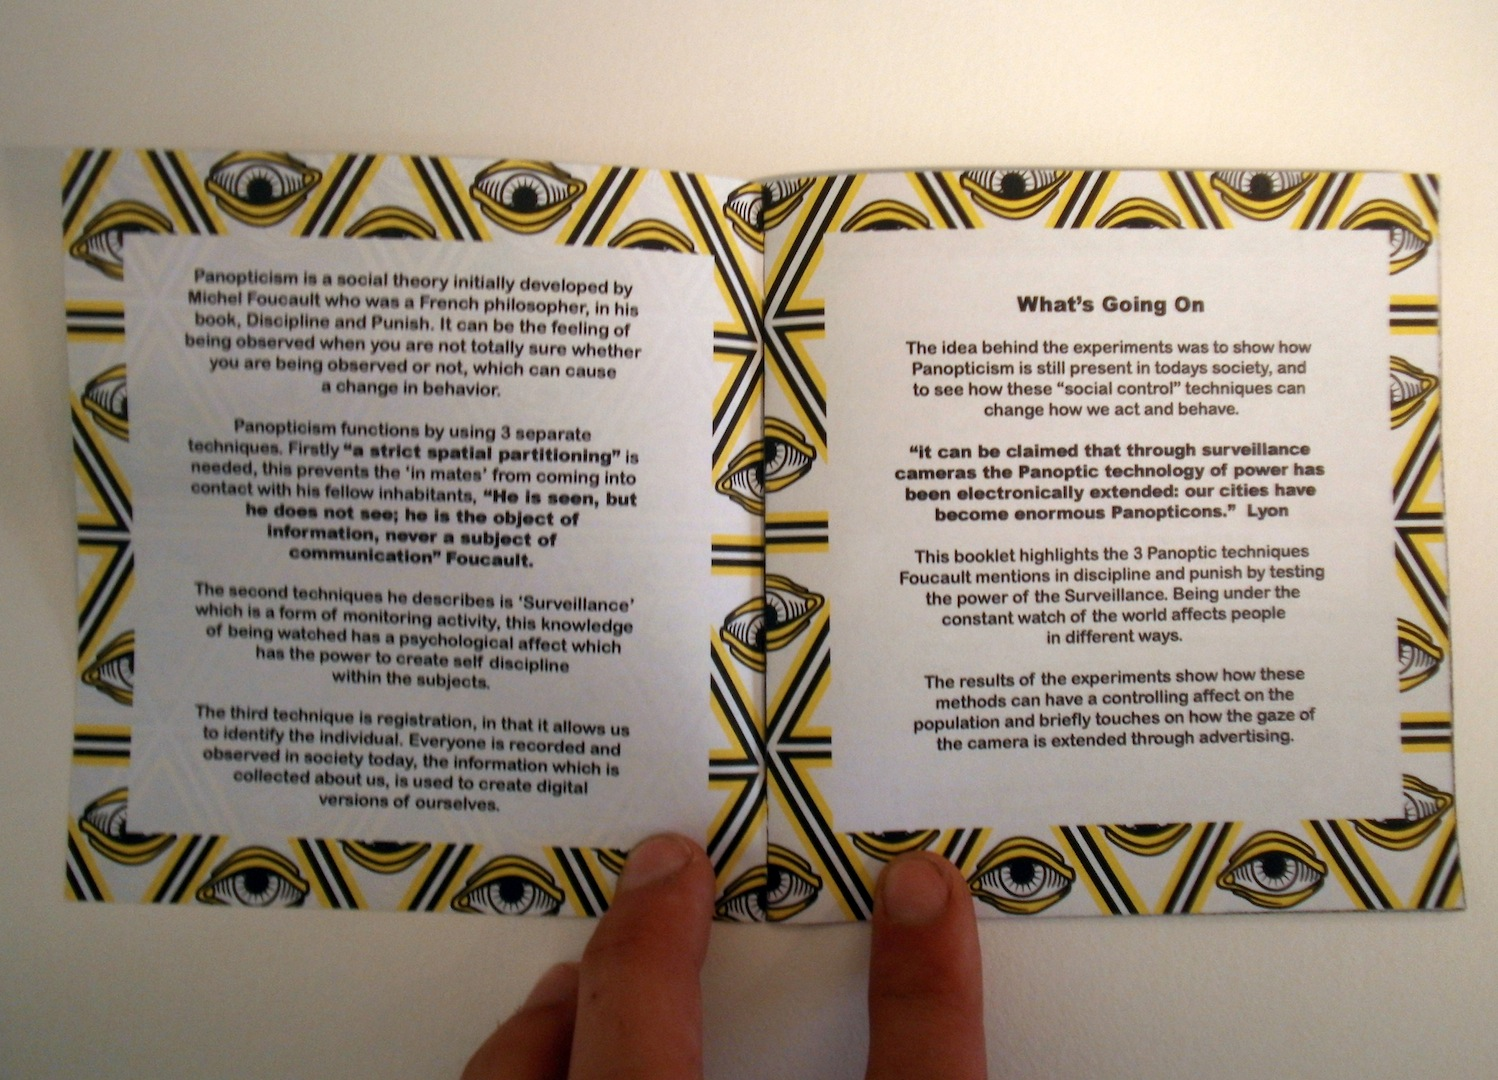 design context 2013 if i had more time i would of printed the booklet out on some satin stock